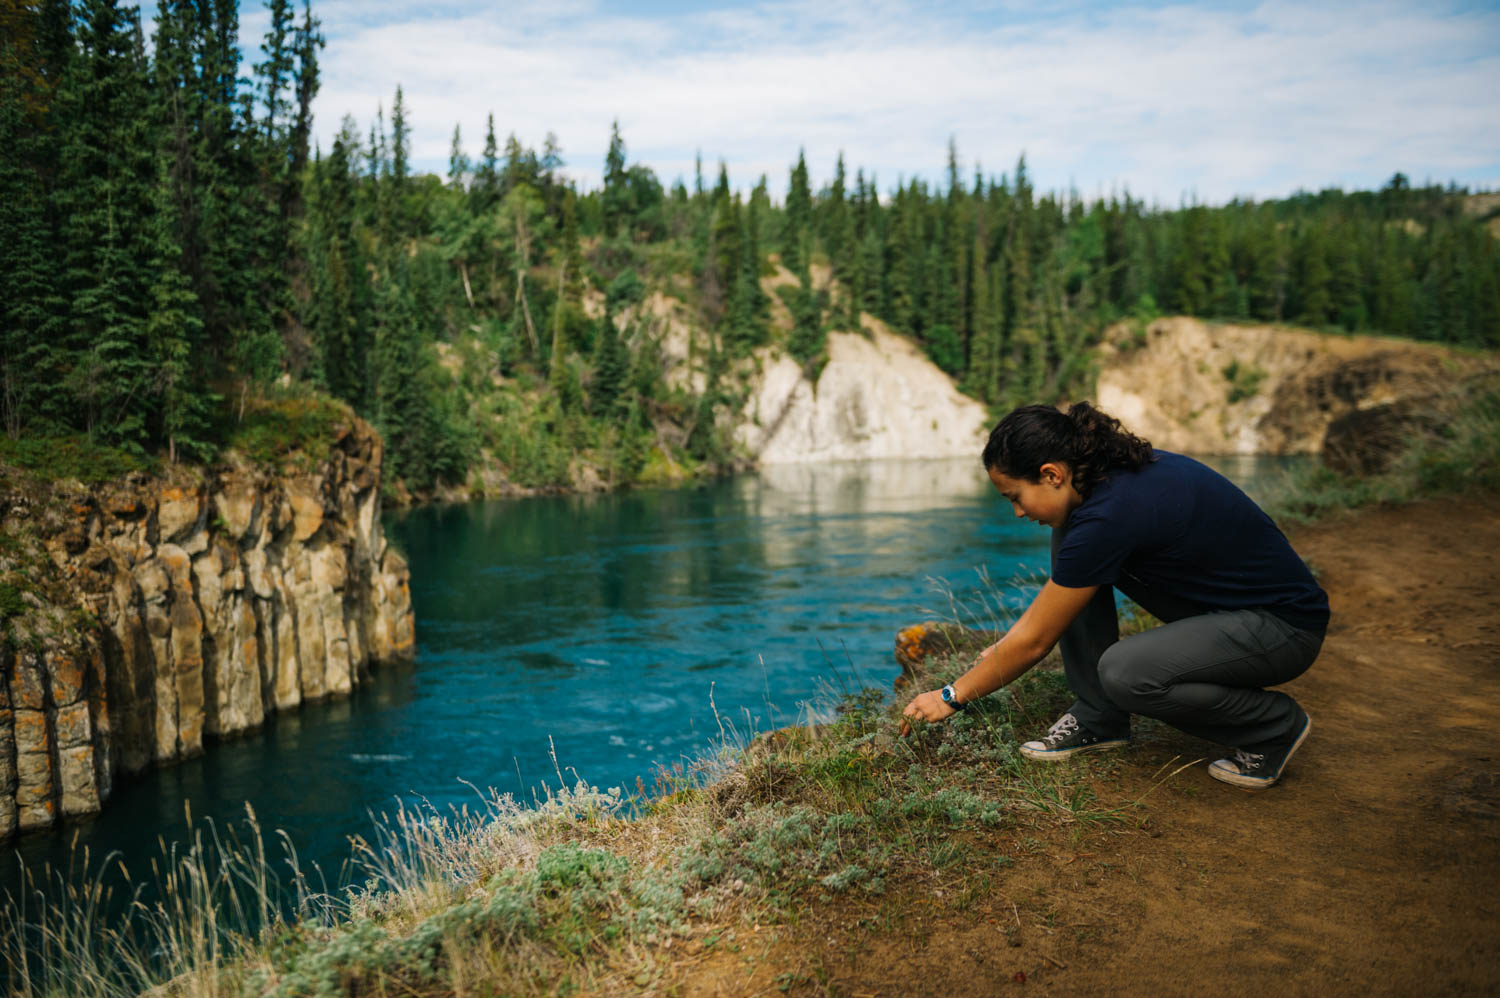 Harvesting wild sage along the Yukon River.